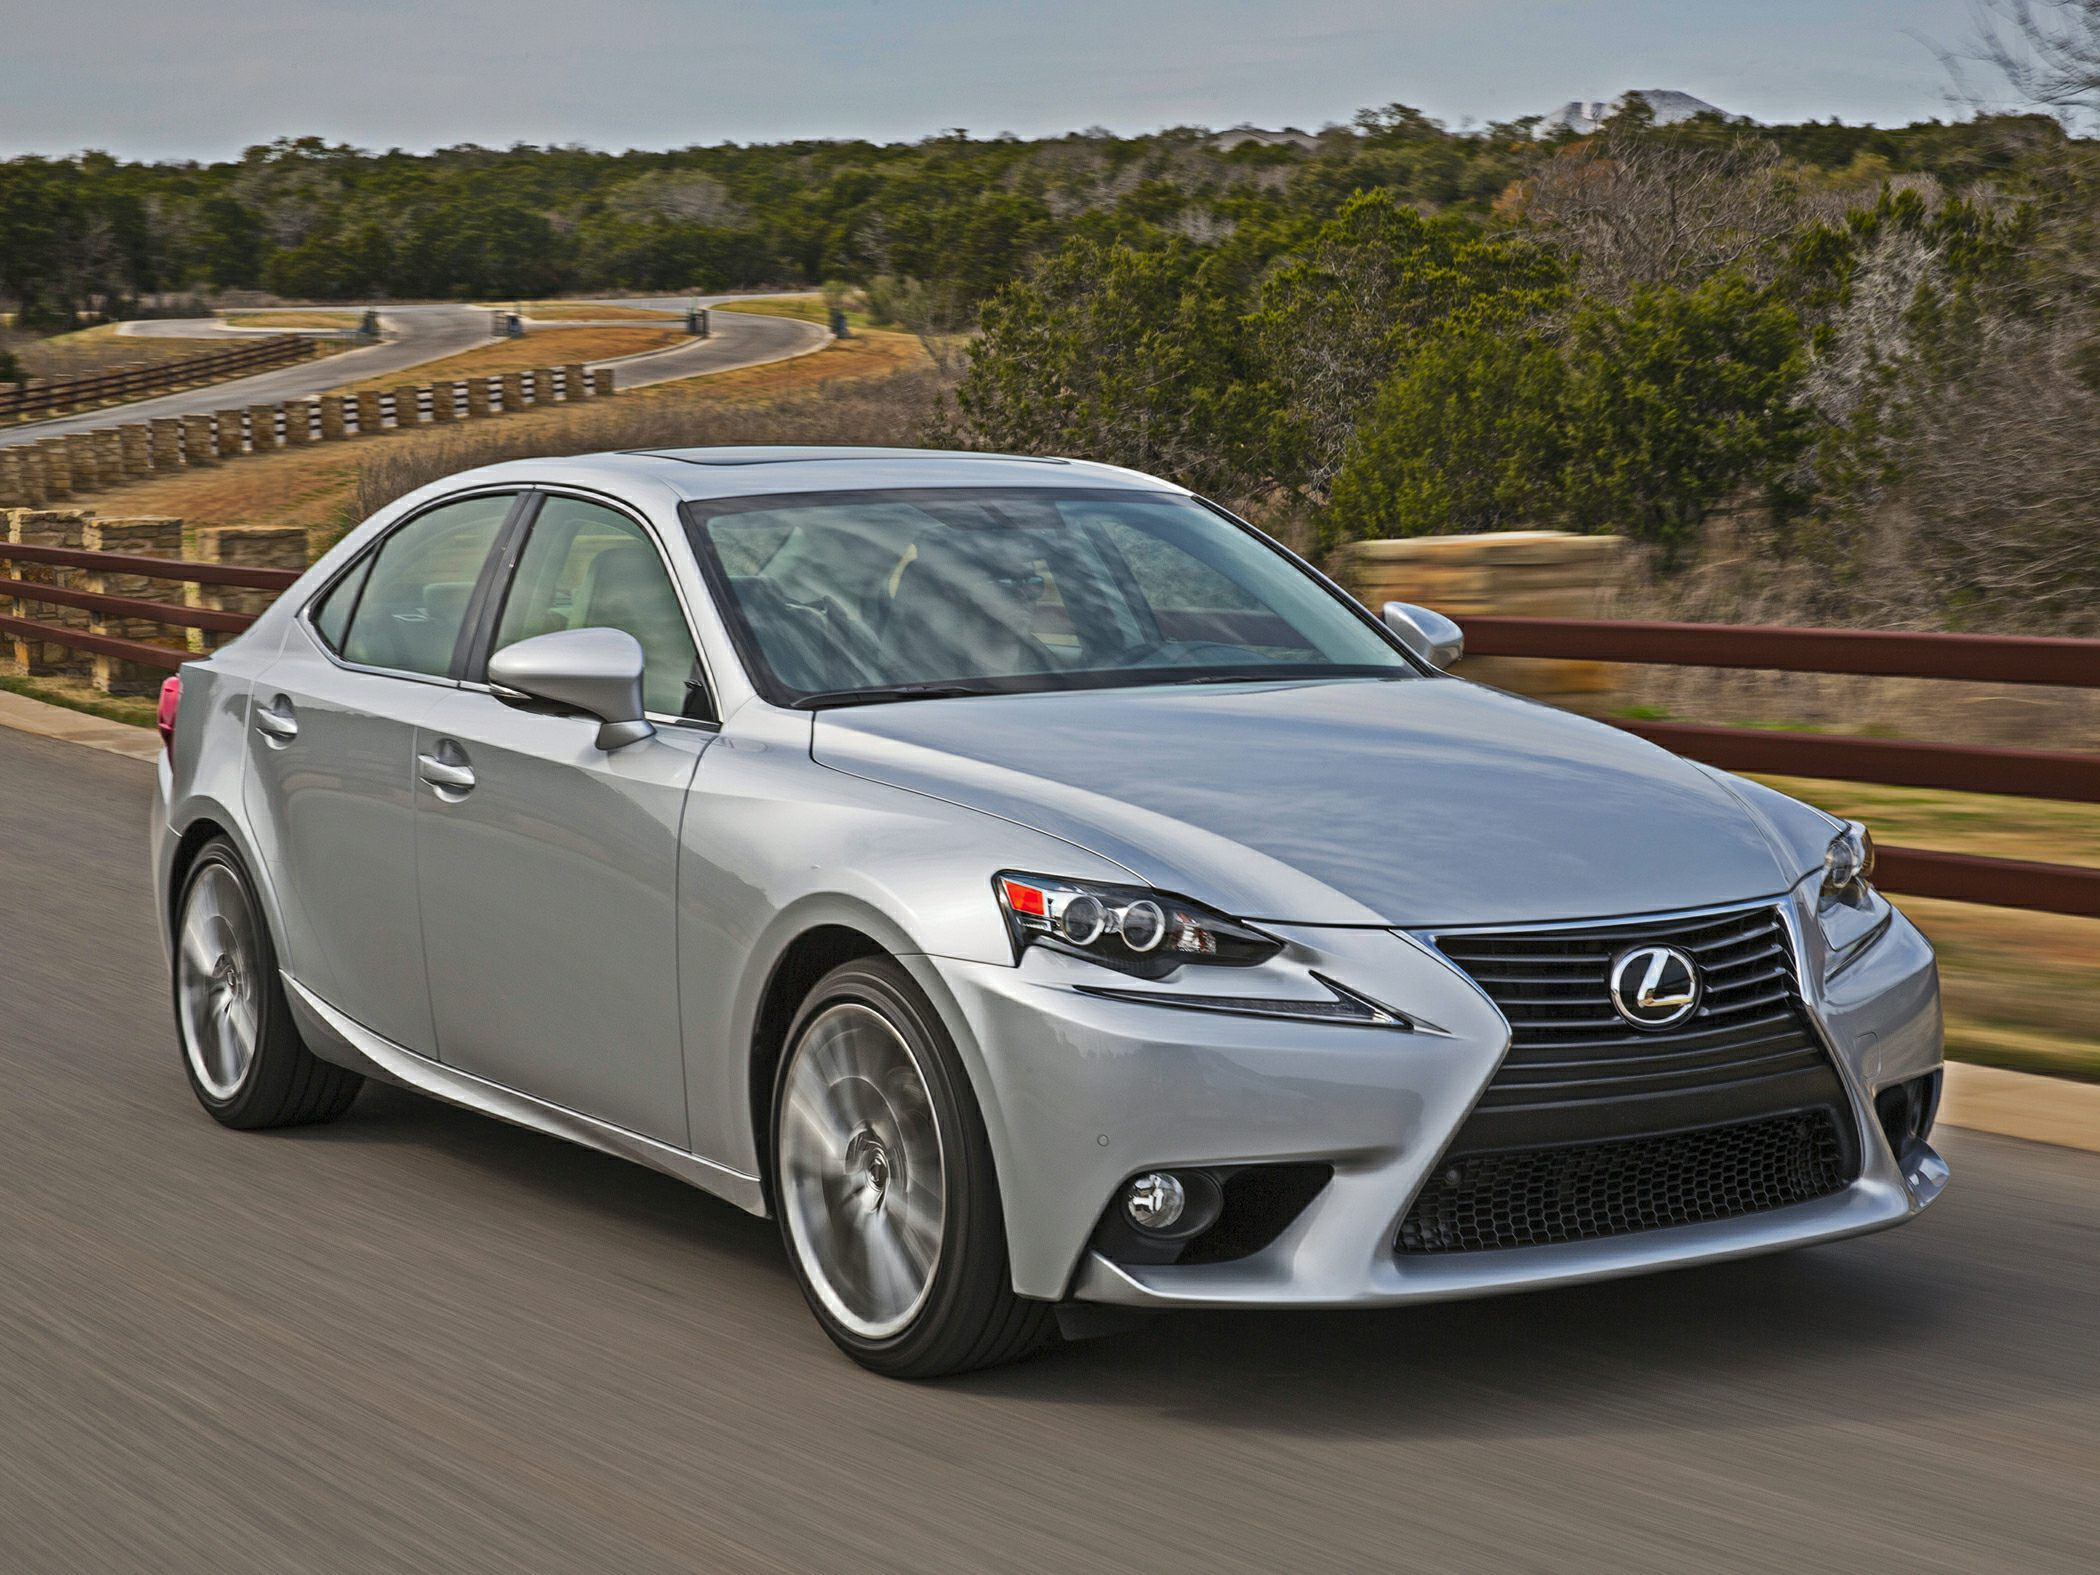 Best 25 lexus is 250 price ideas on pinterest lexus is250 is 250 lexus and lexus 350 price